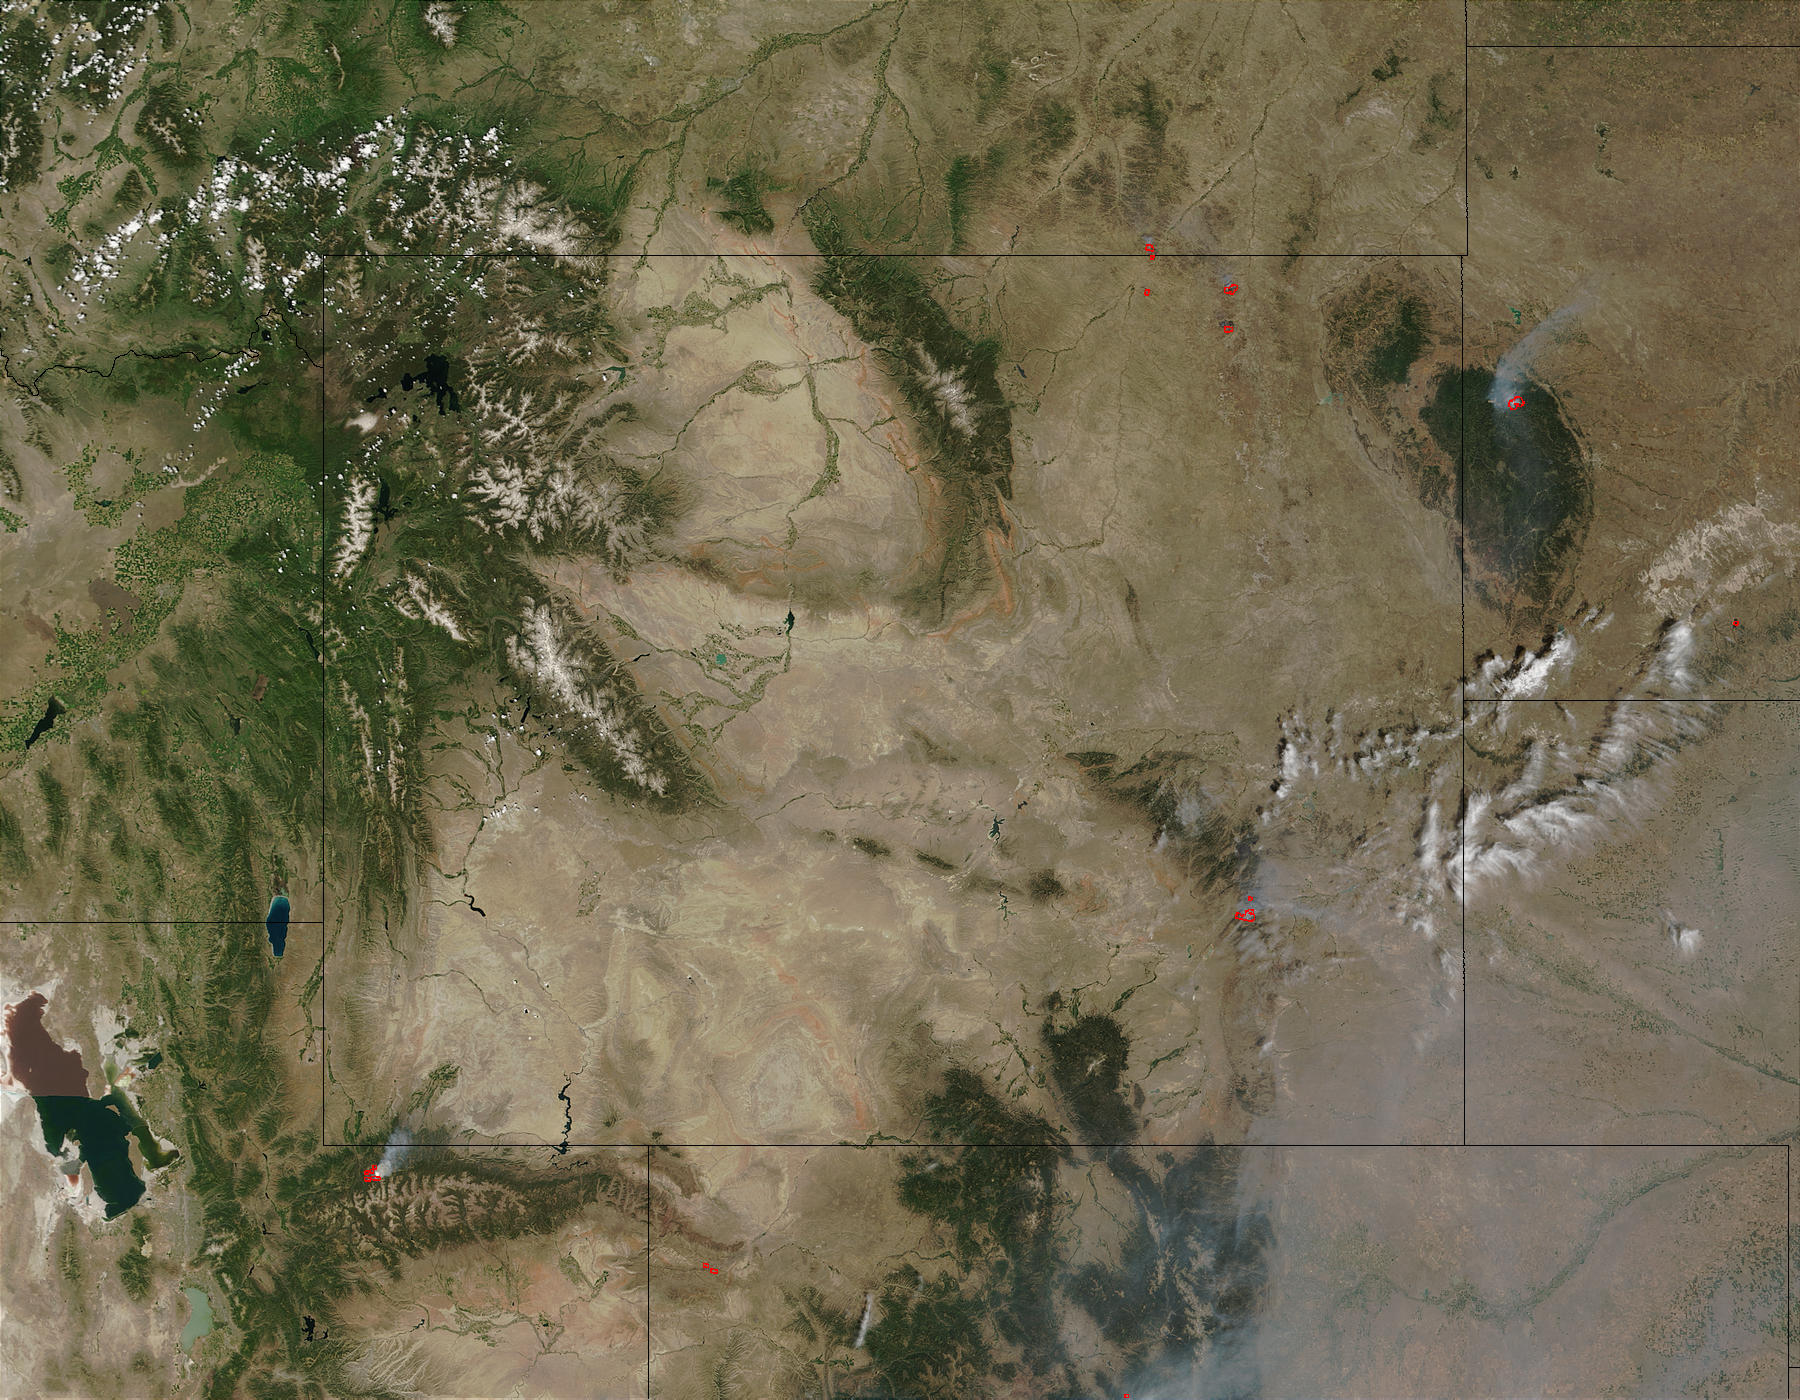 Fires in Wyoming and South Dakota